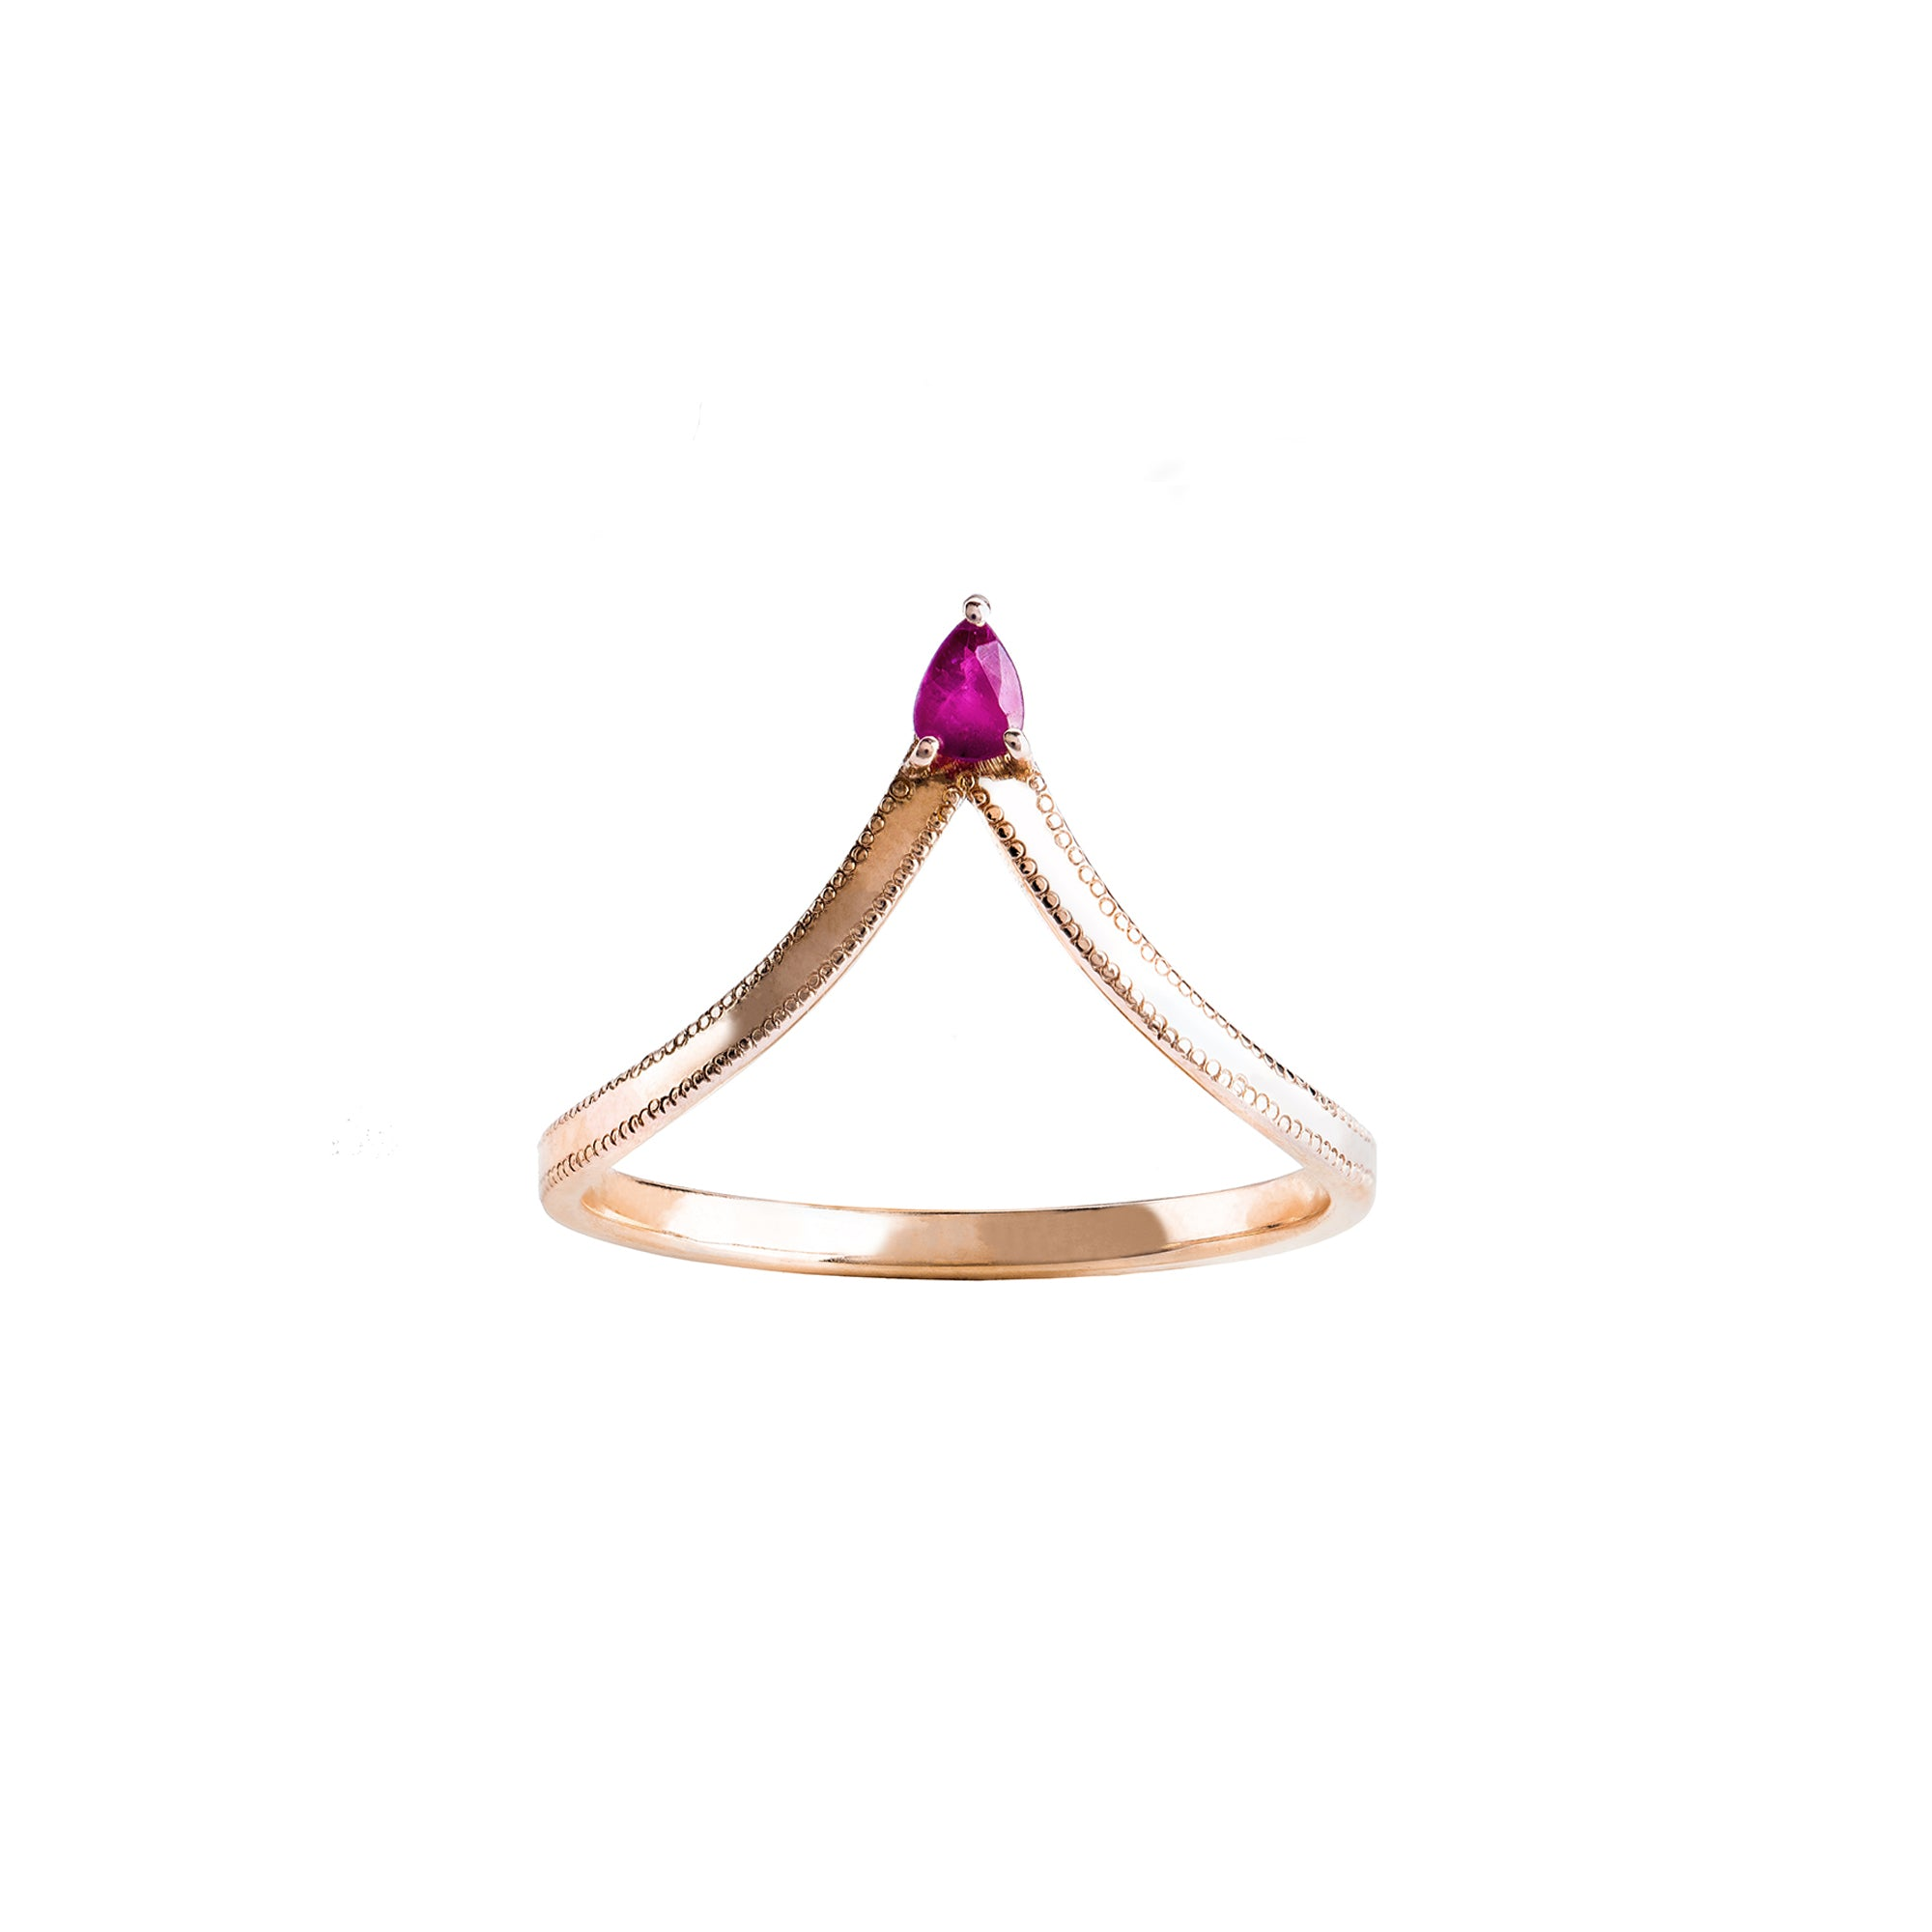 Jenny Dee Asterope Ring - Ruby - Rings - Broken English Jewelry